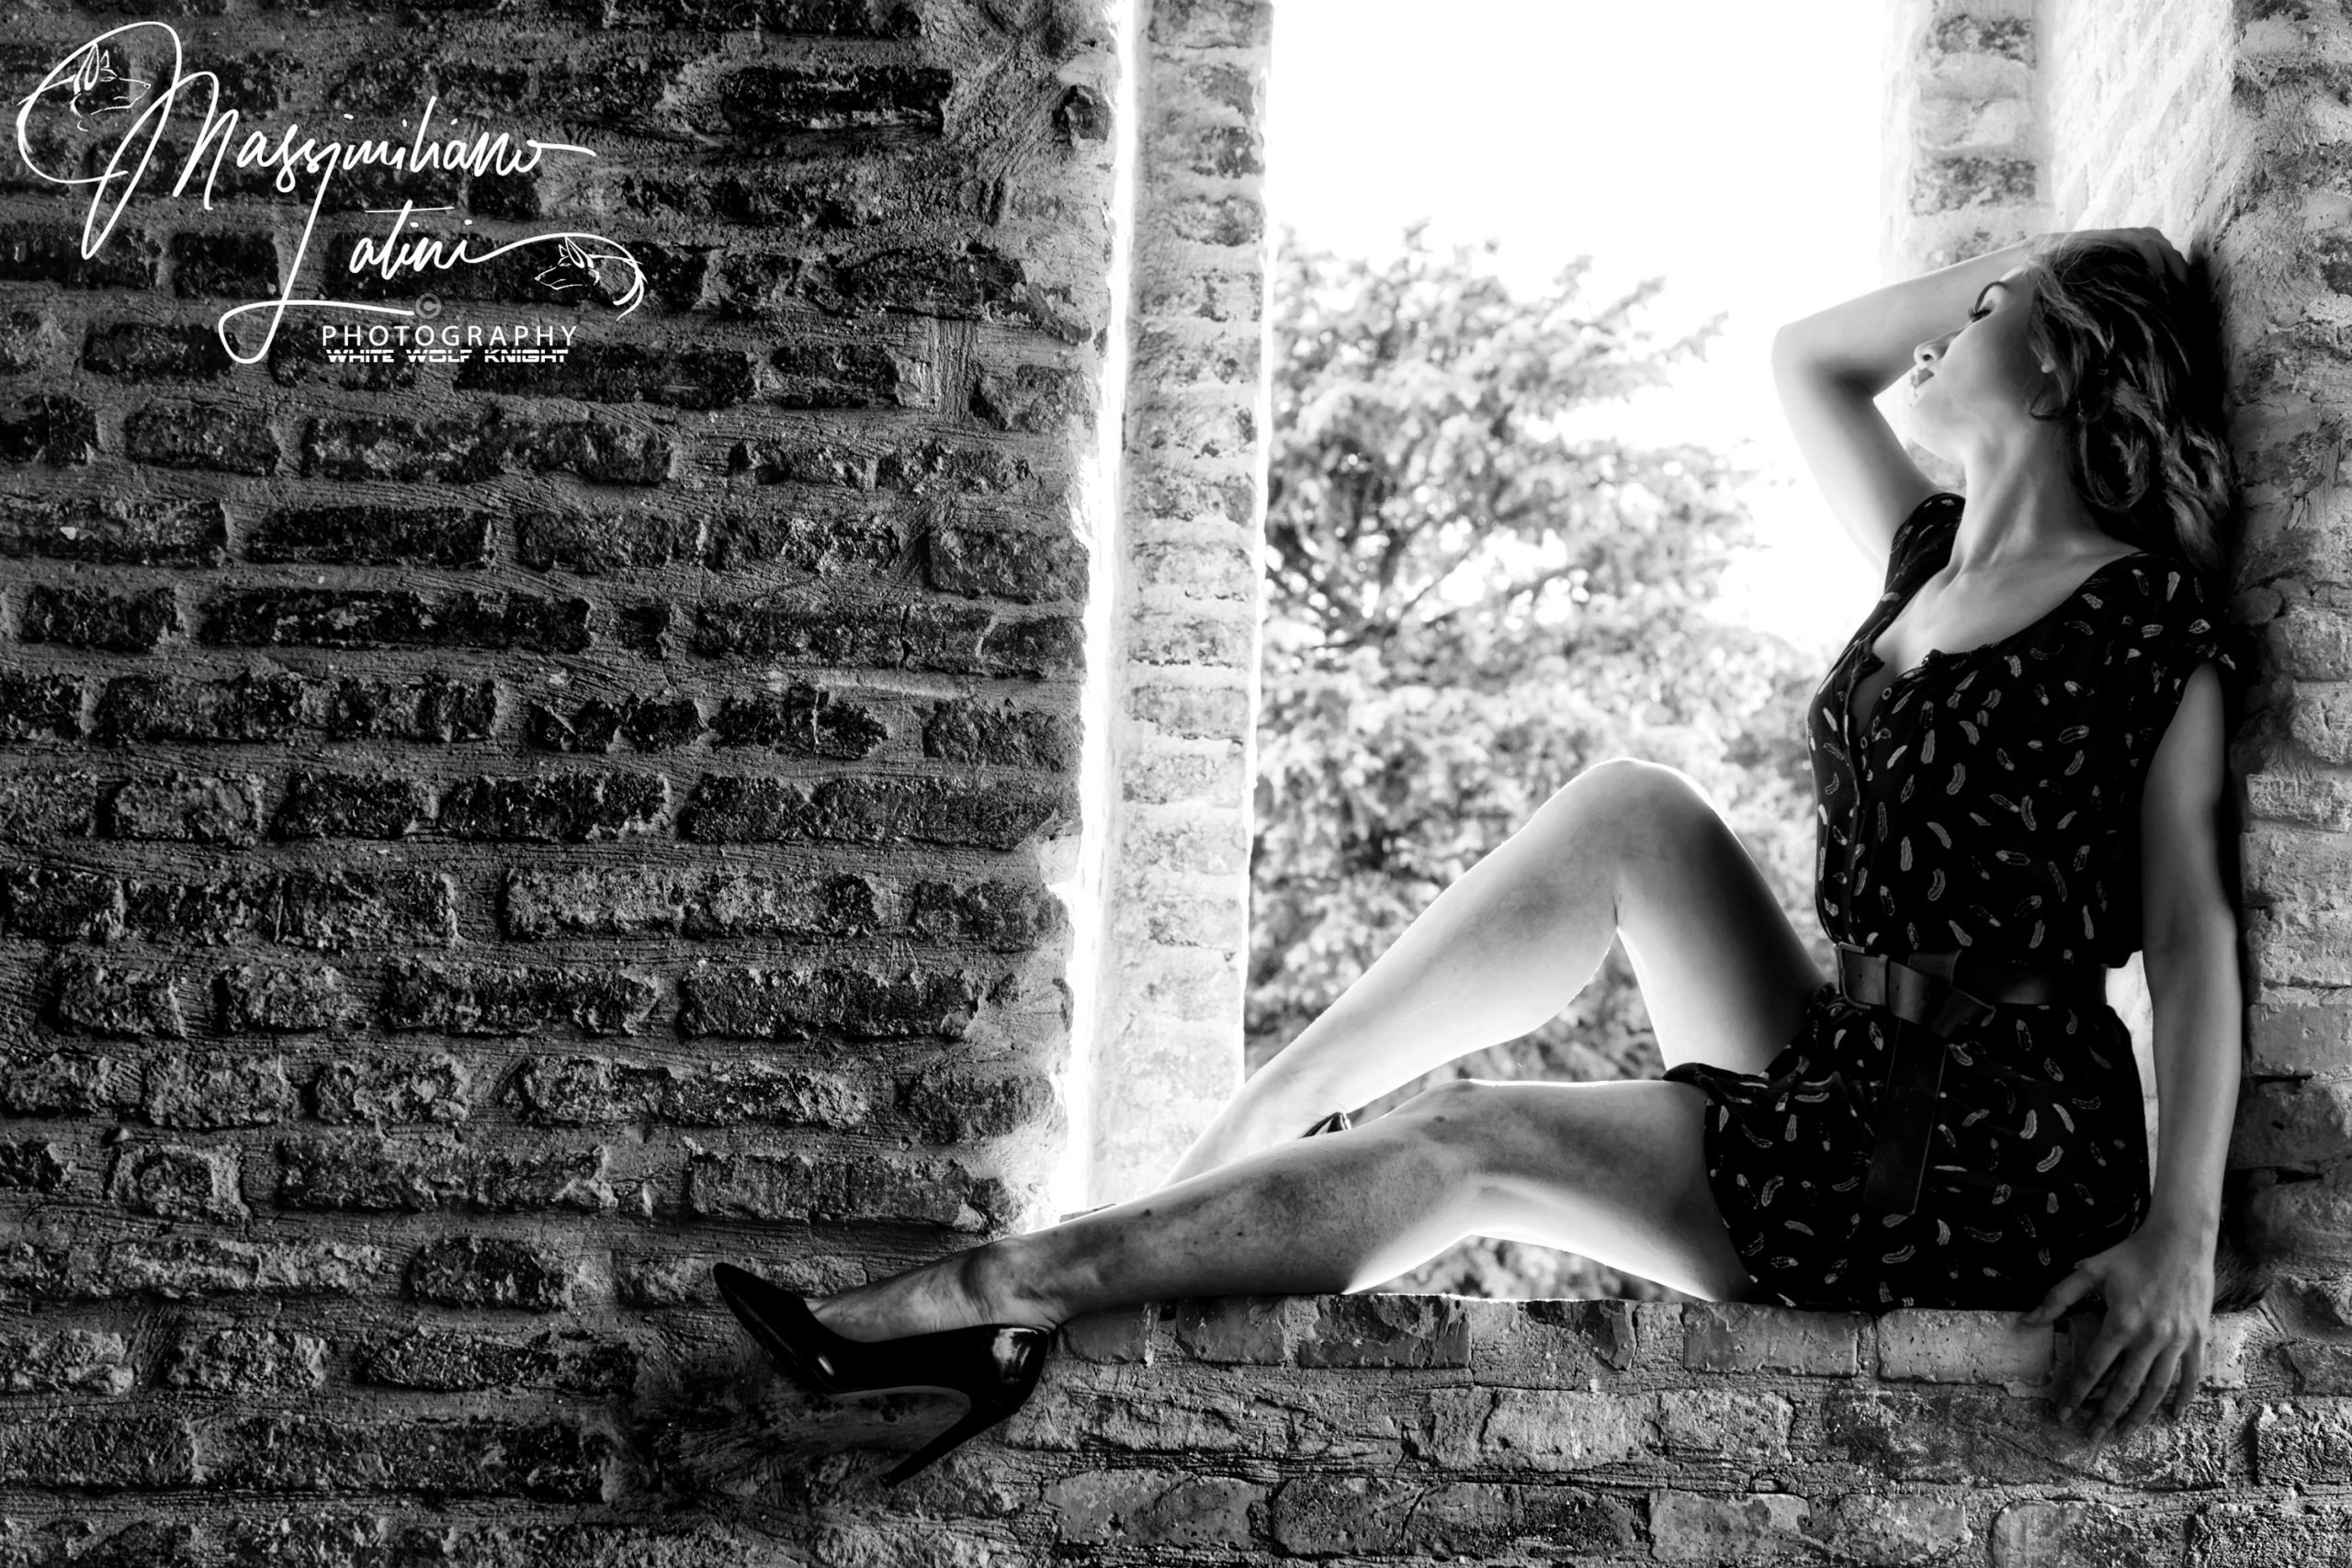 Categorie: Fashion, Glamour, Portrait - Photographer: MASSIMILIANO LATINI (White Wolf Knight PH) - Location: Ancona, AN, Italia